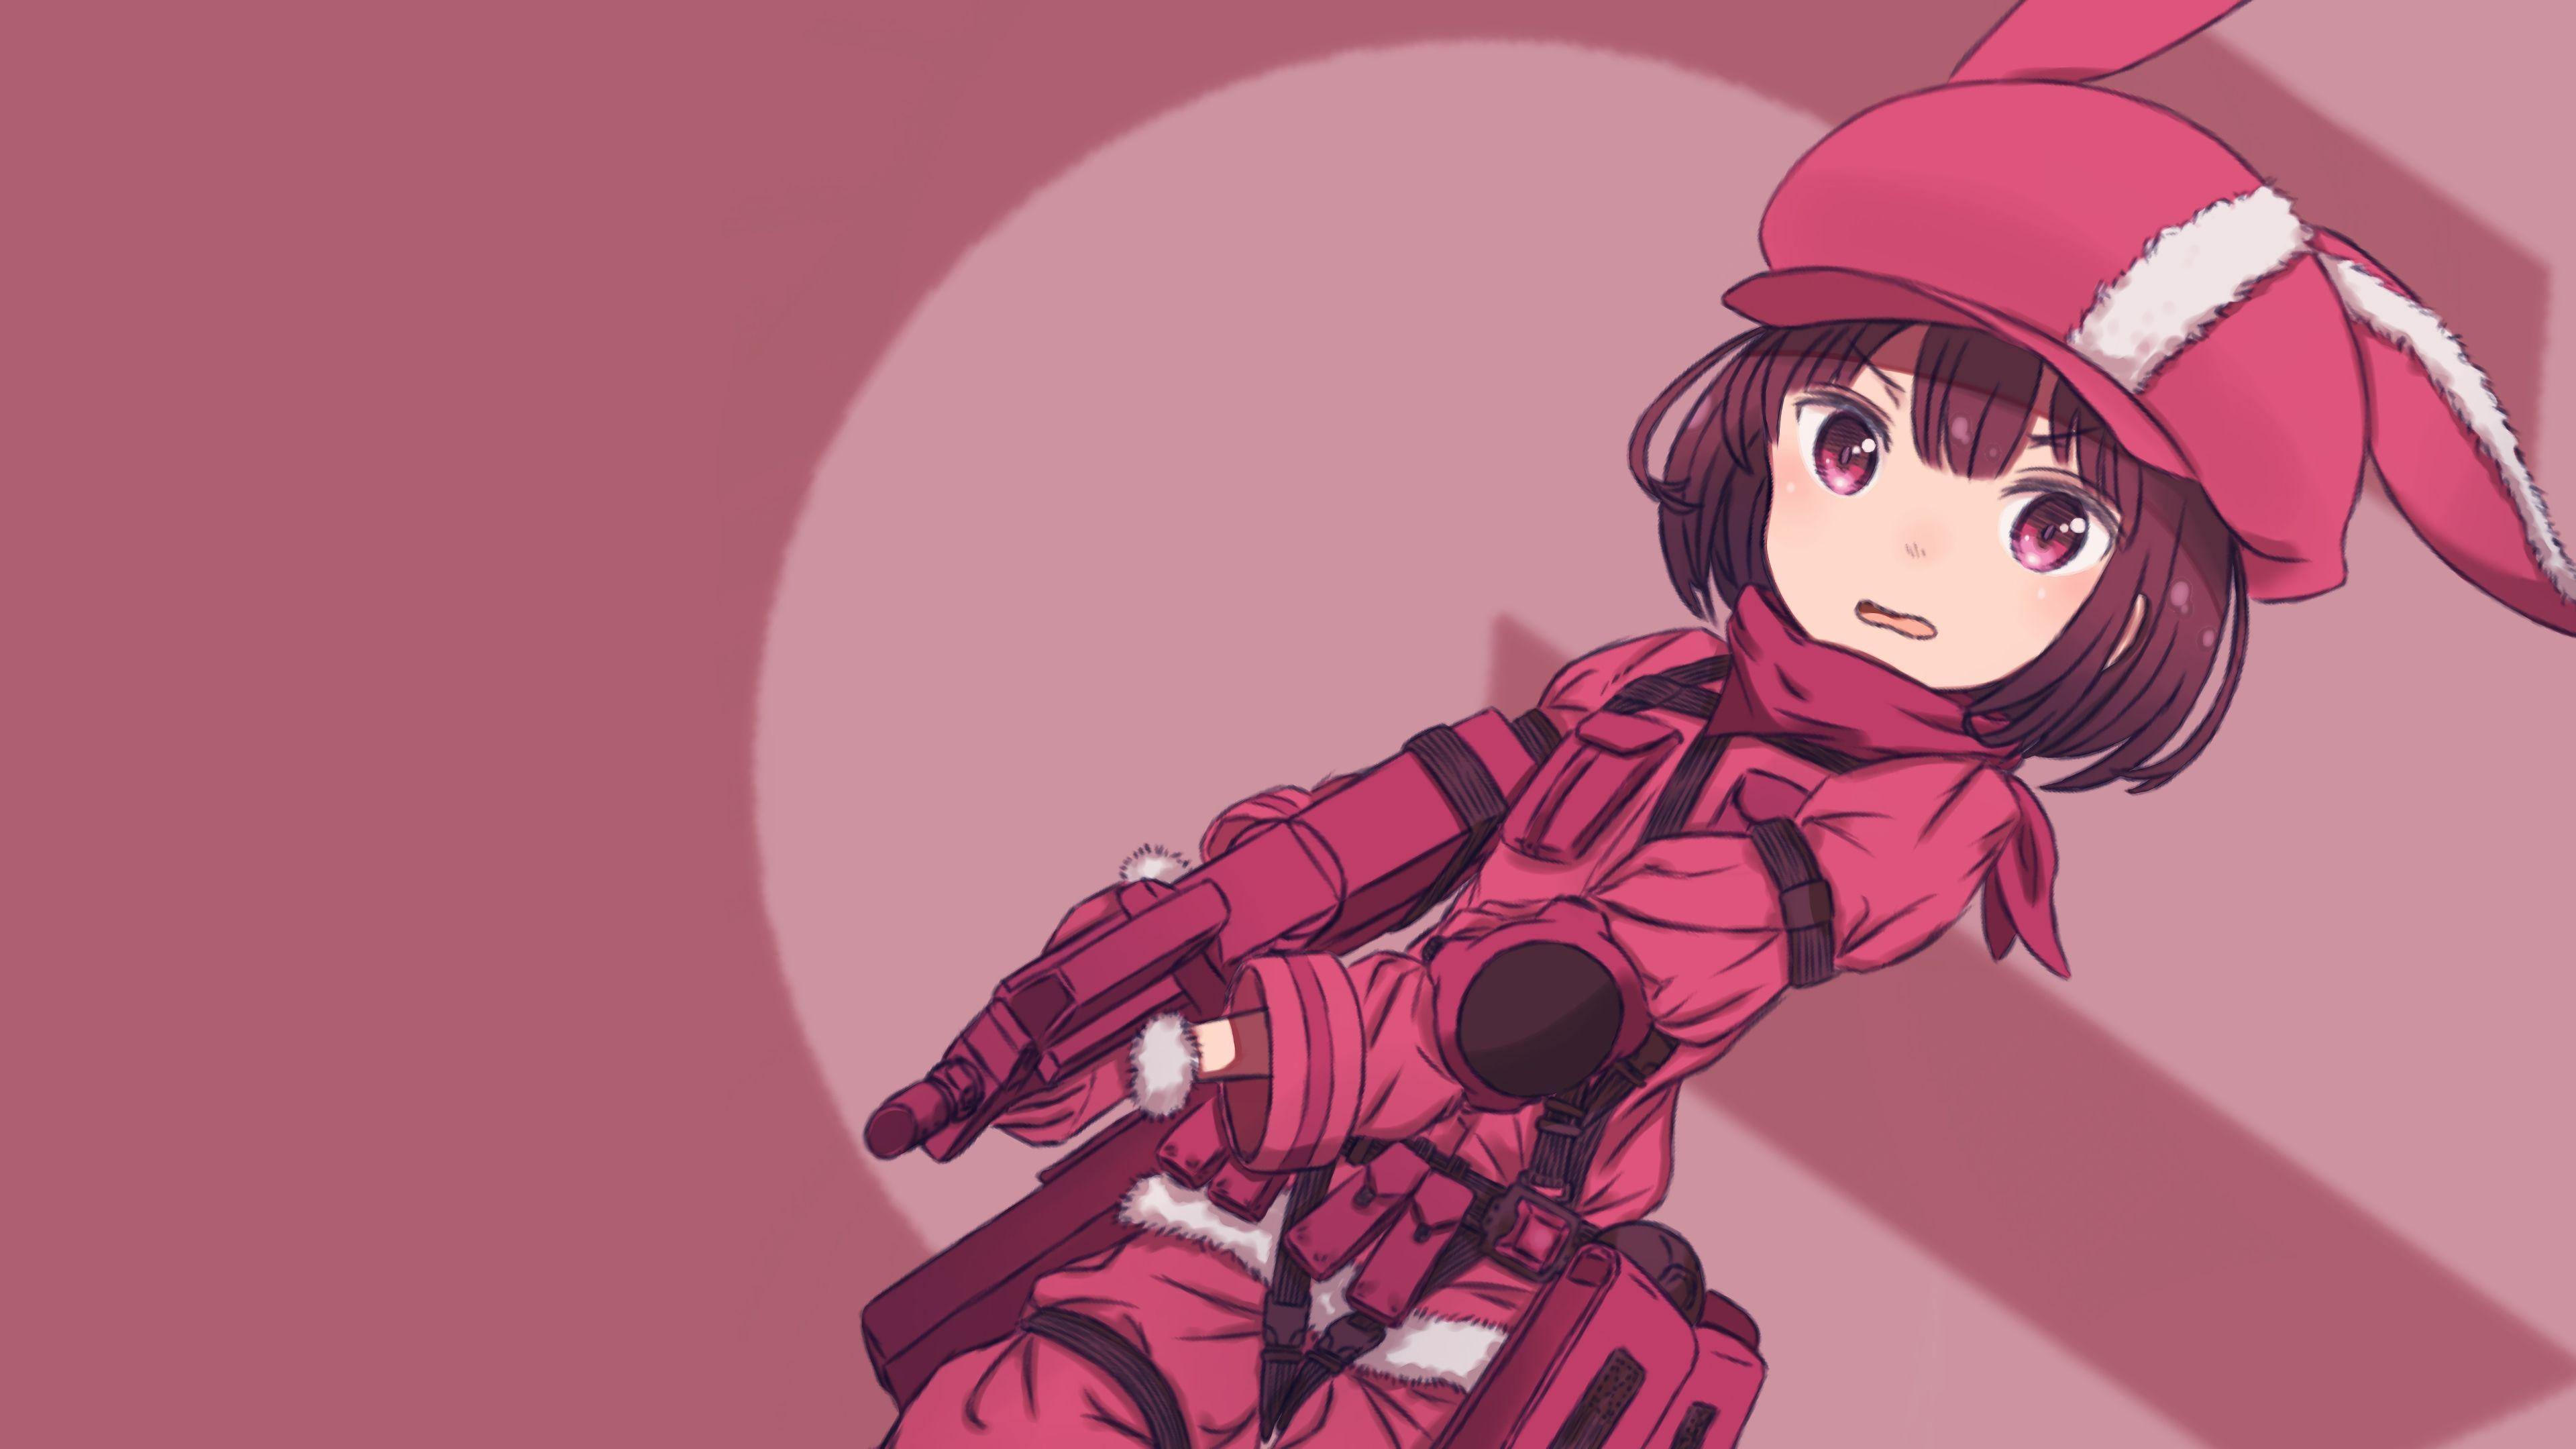 SAO Alternative Gun Gale Online wallpapers 7